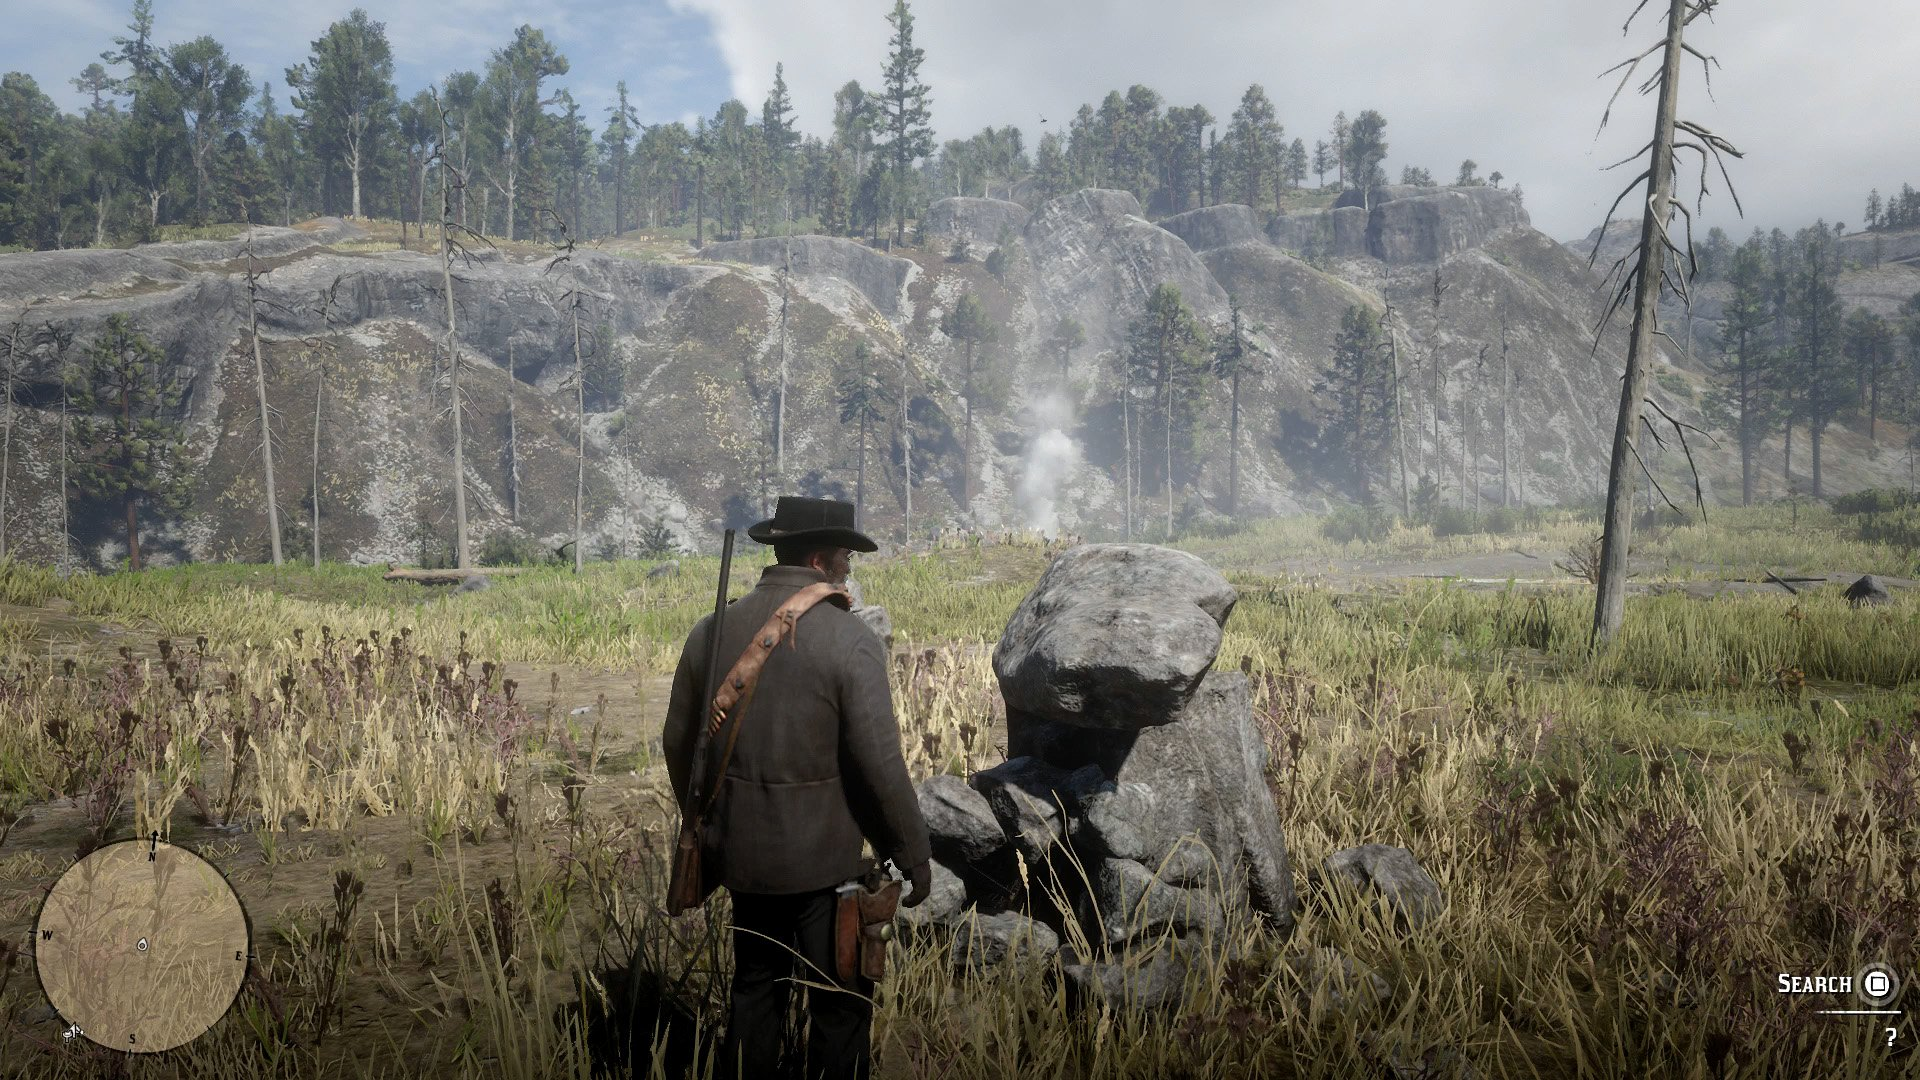 Overtime - Is there a hidden reference in Red Dead Redemption II?